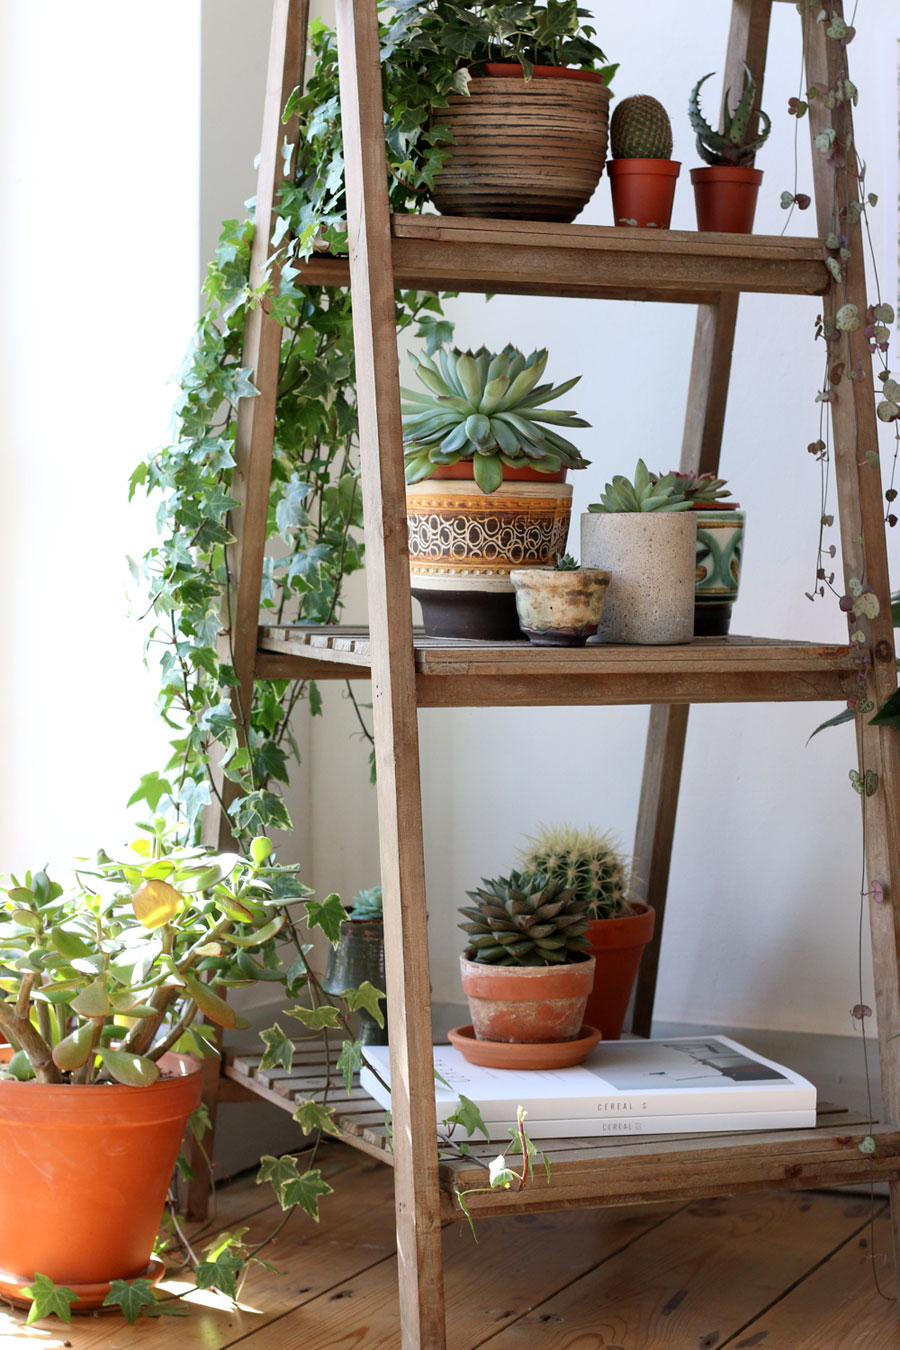 Ladder for plants